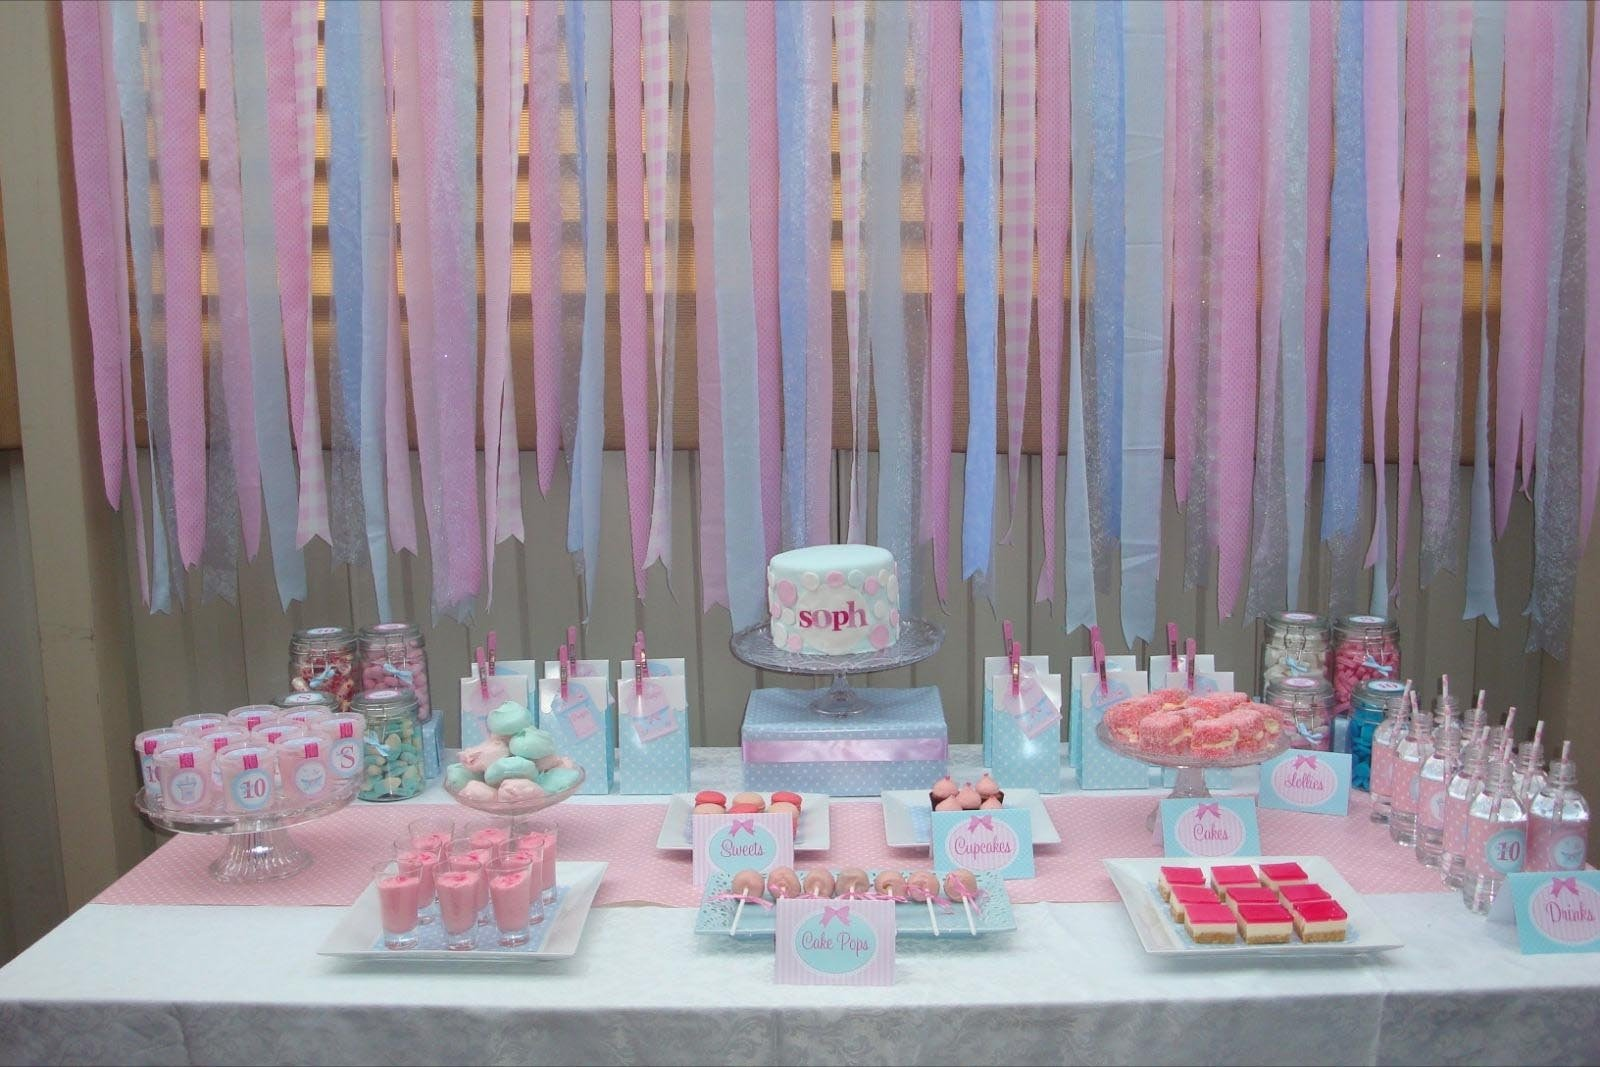 10 Most Recommended 9 Yr Old Birthday Party Ideas pretentious ideas for 9 year old birthday party at home spa food 1 2021